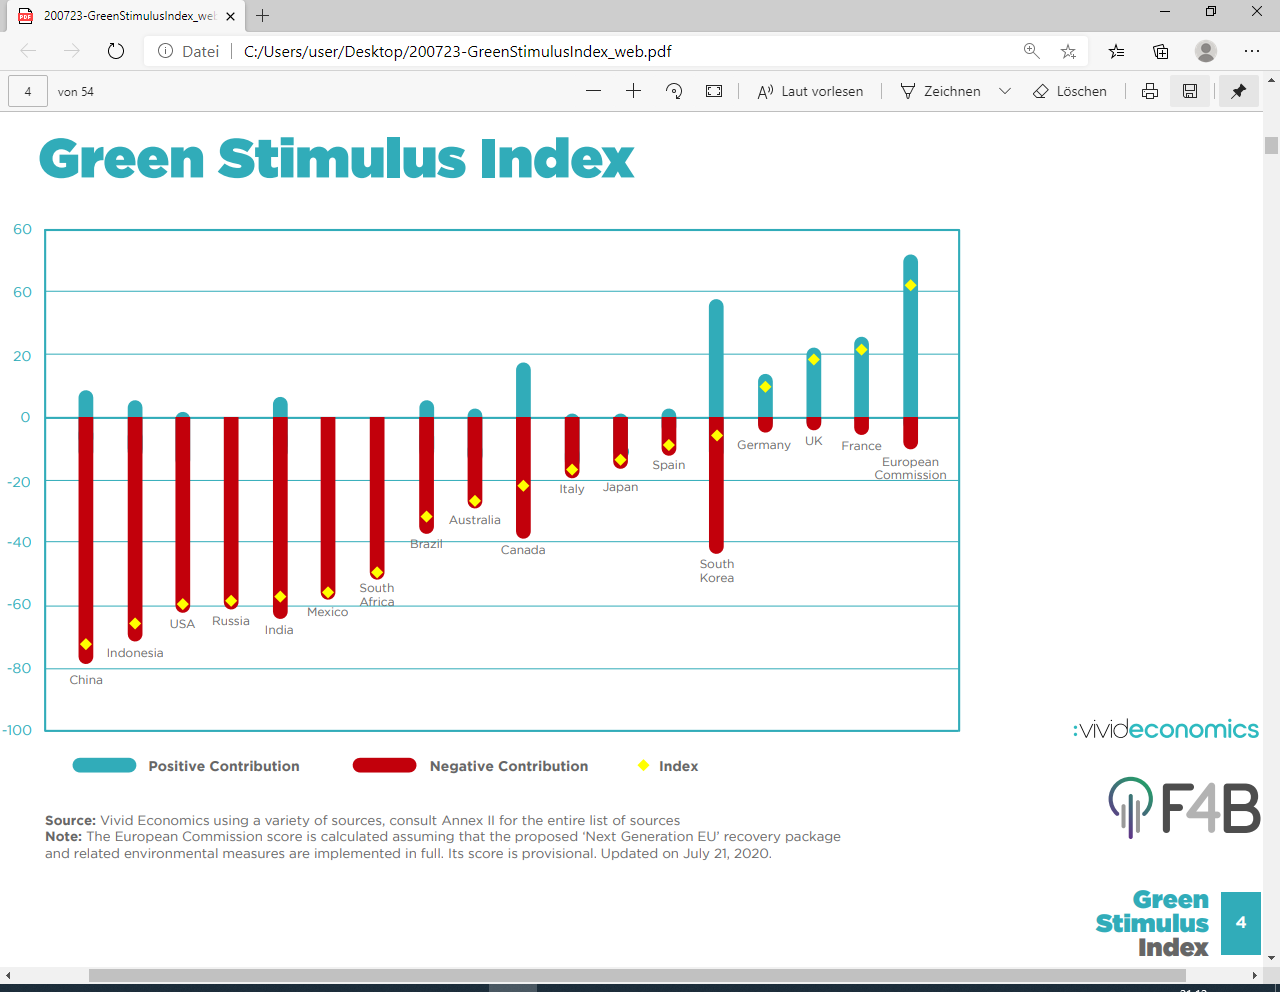 Grafik: Green Stimulus Index. Quelle: Vivid-Economics (2020).